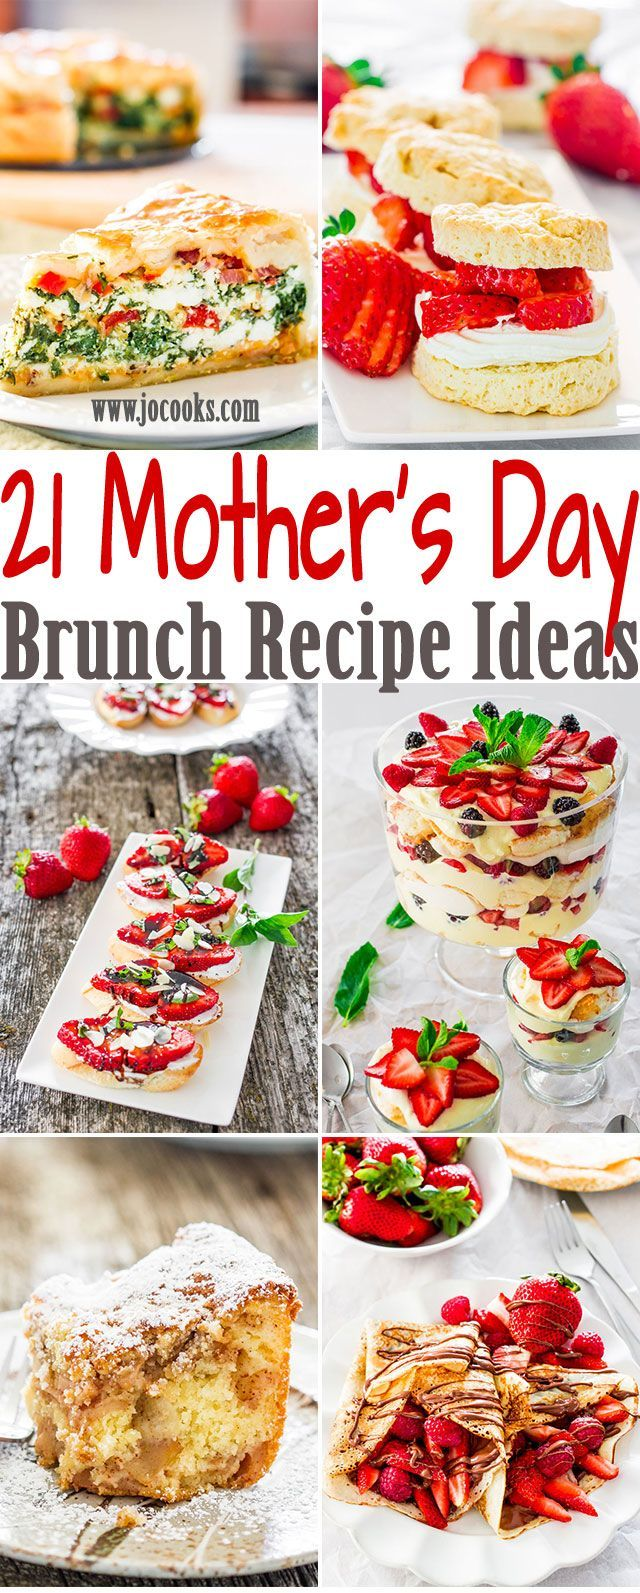 21 mother's day brunch recipe ideas your mom would love - a